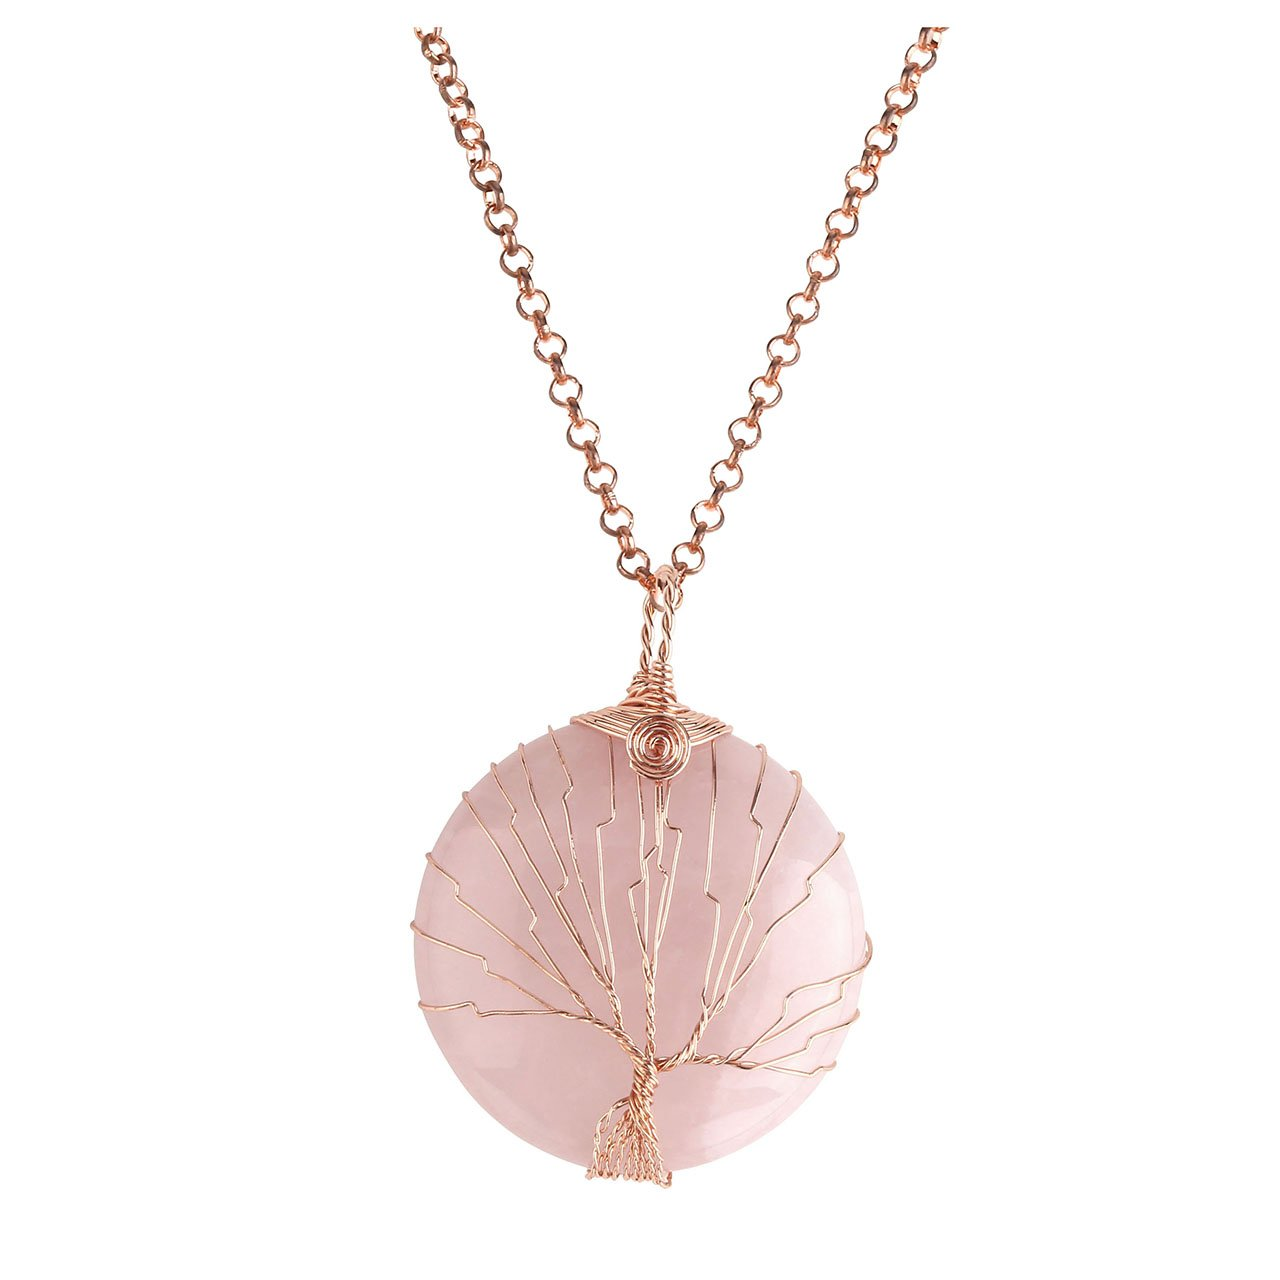 Top Plaza Vintage Copper Wire Wrapped Tree of Life Natural Gemstone Round Pendant Necklace Healing Crystal Chakra Jewelry for Women - Rose Quartz